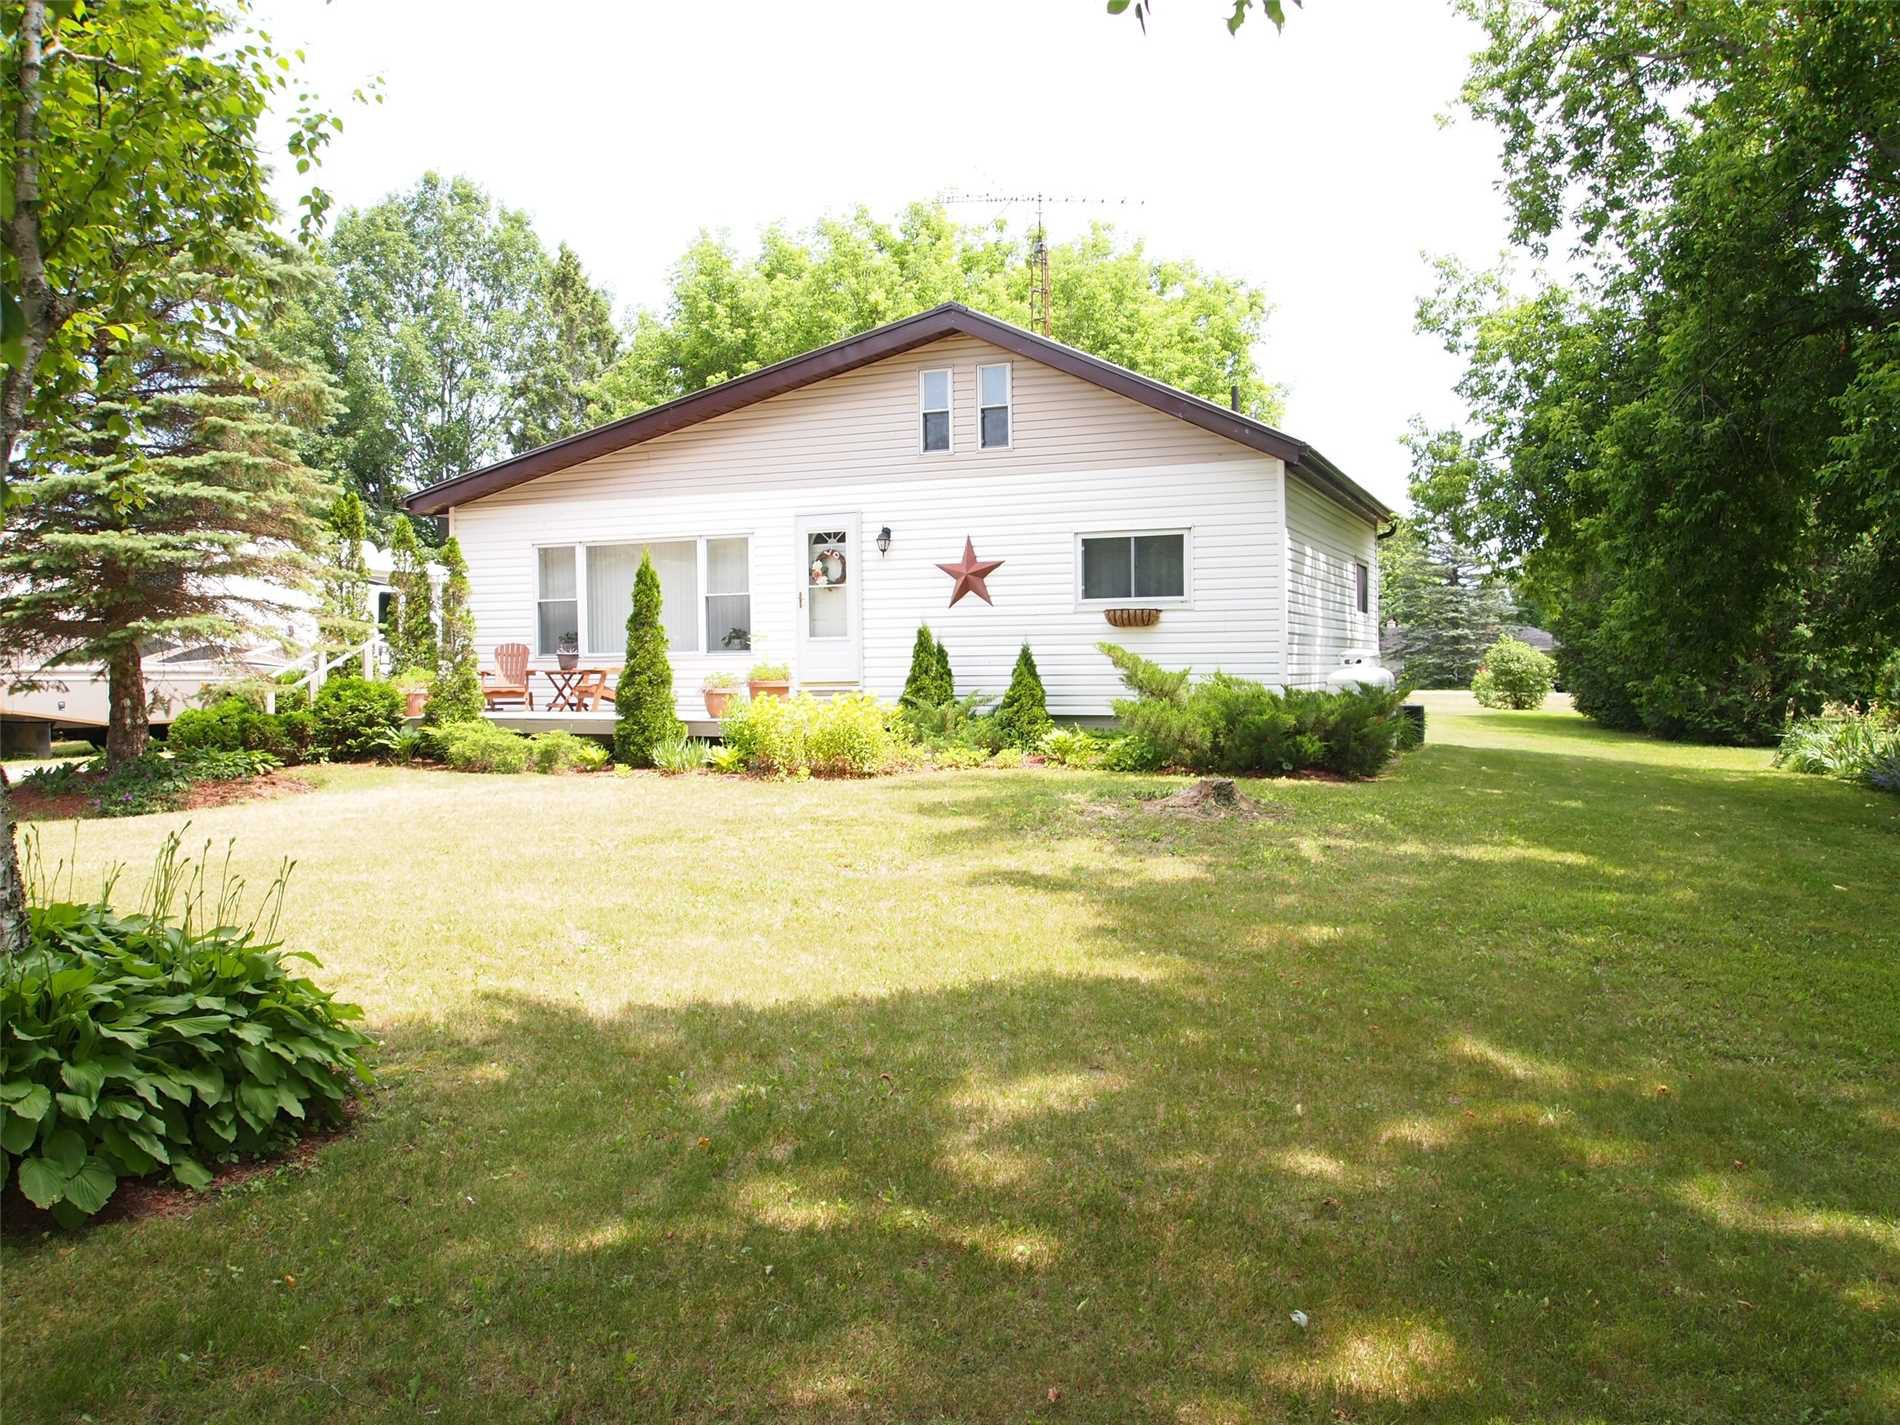 Main Photo: 46 Mitchellview Drive in Kawartha Lakes: Kirkfield House (Bungalow) for sale : MLS®# X4512797